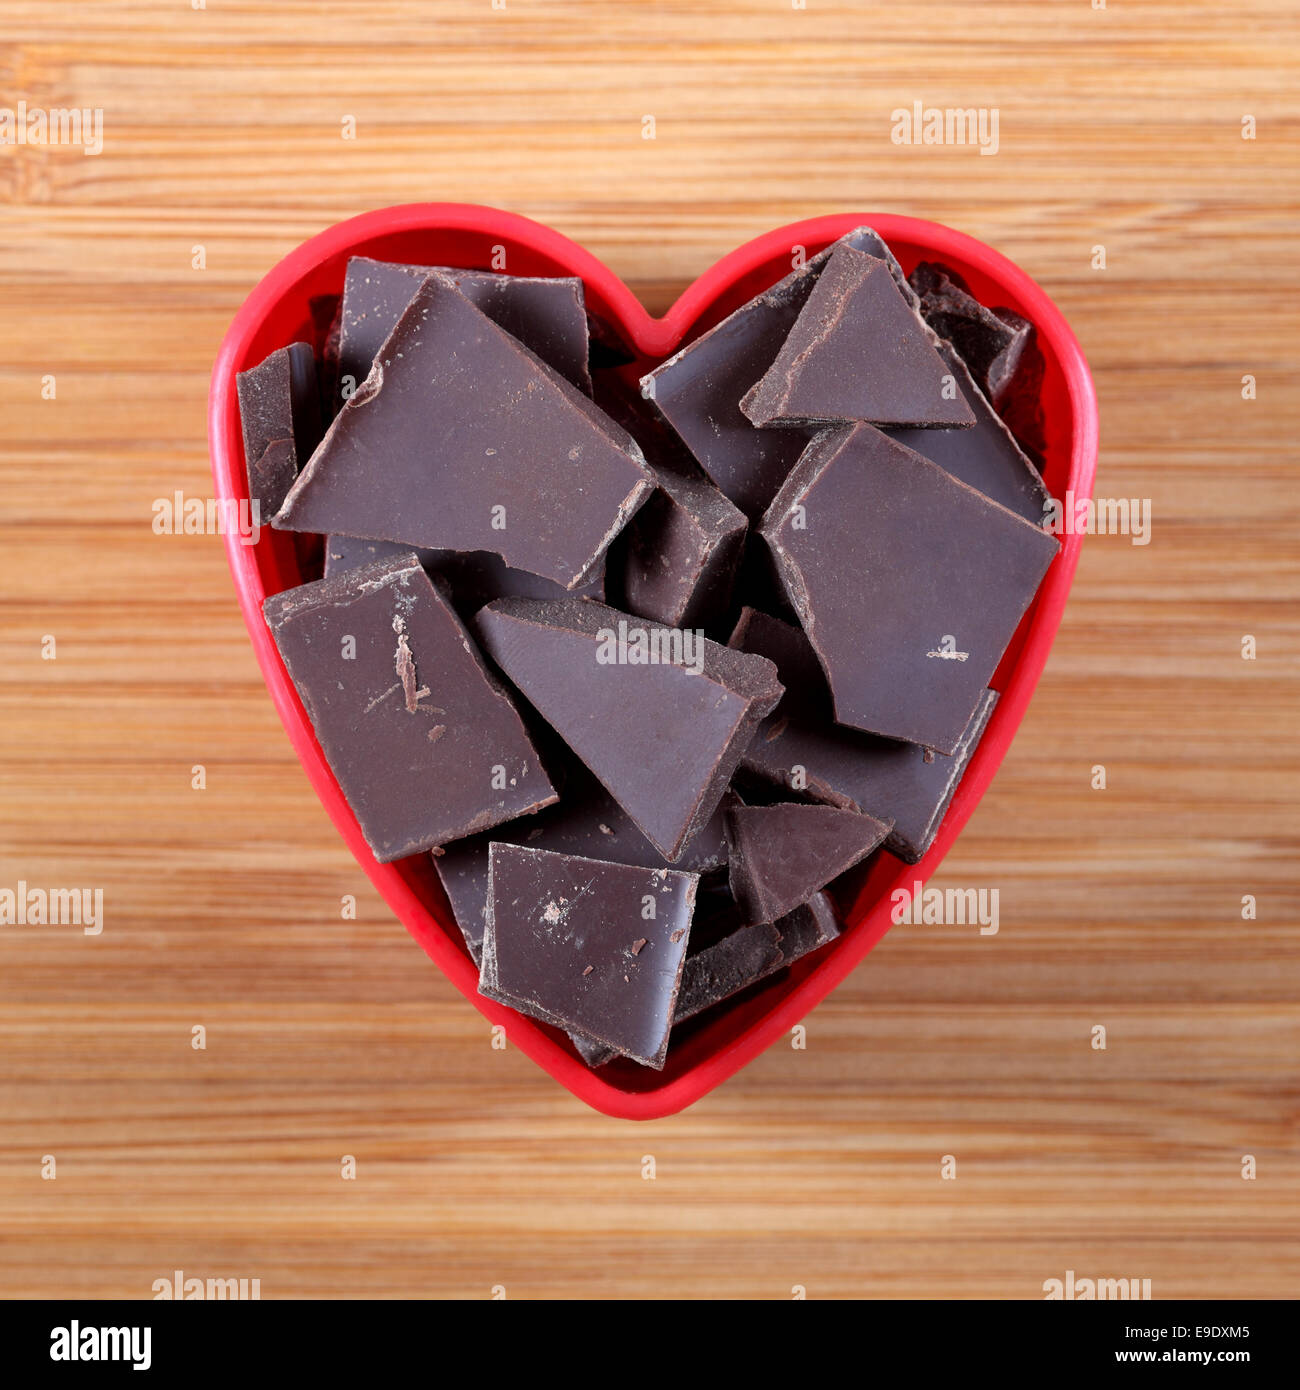 Pieces of dark chocolate in a heart bowl. - Stock Image